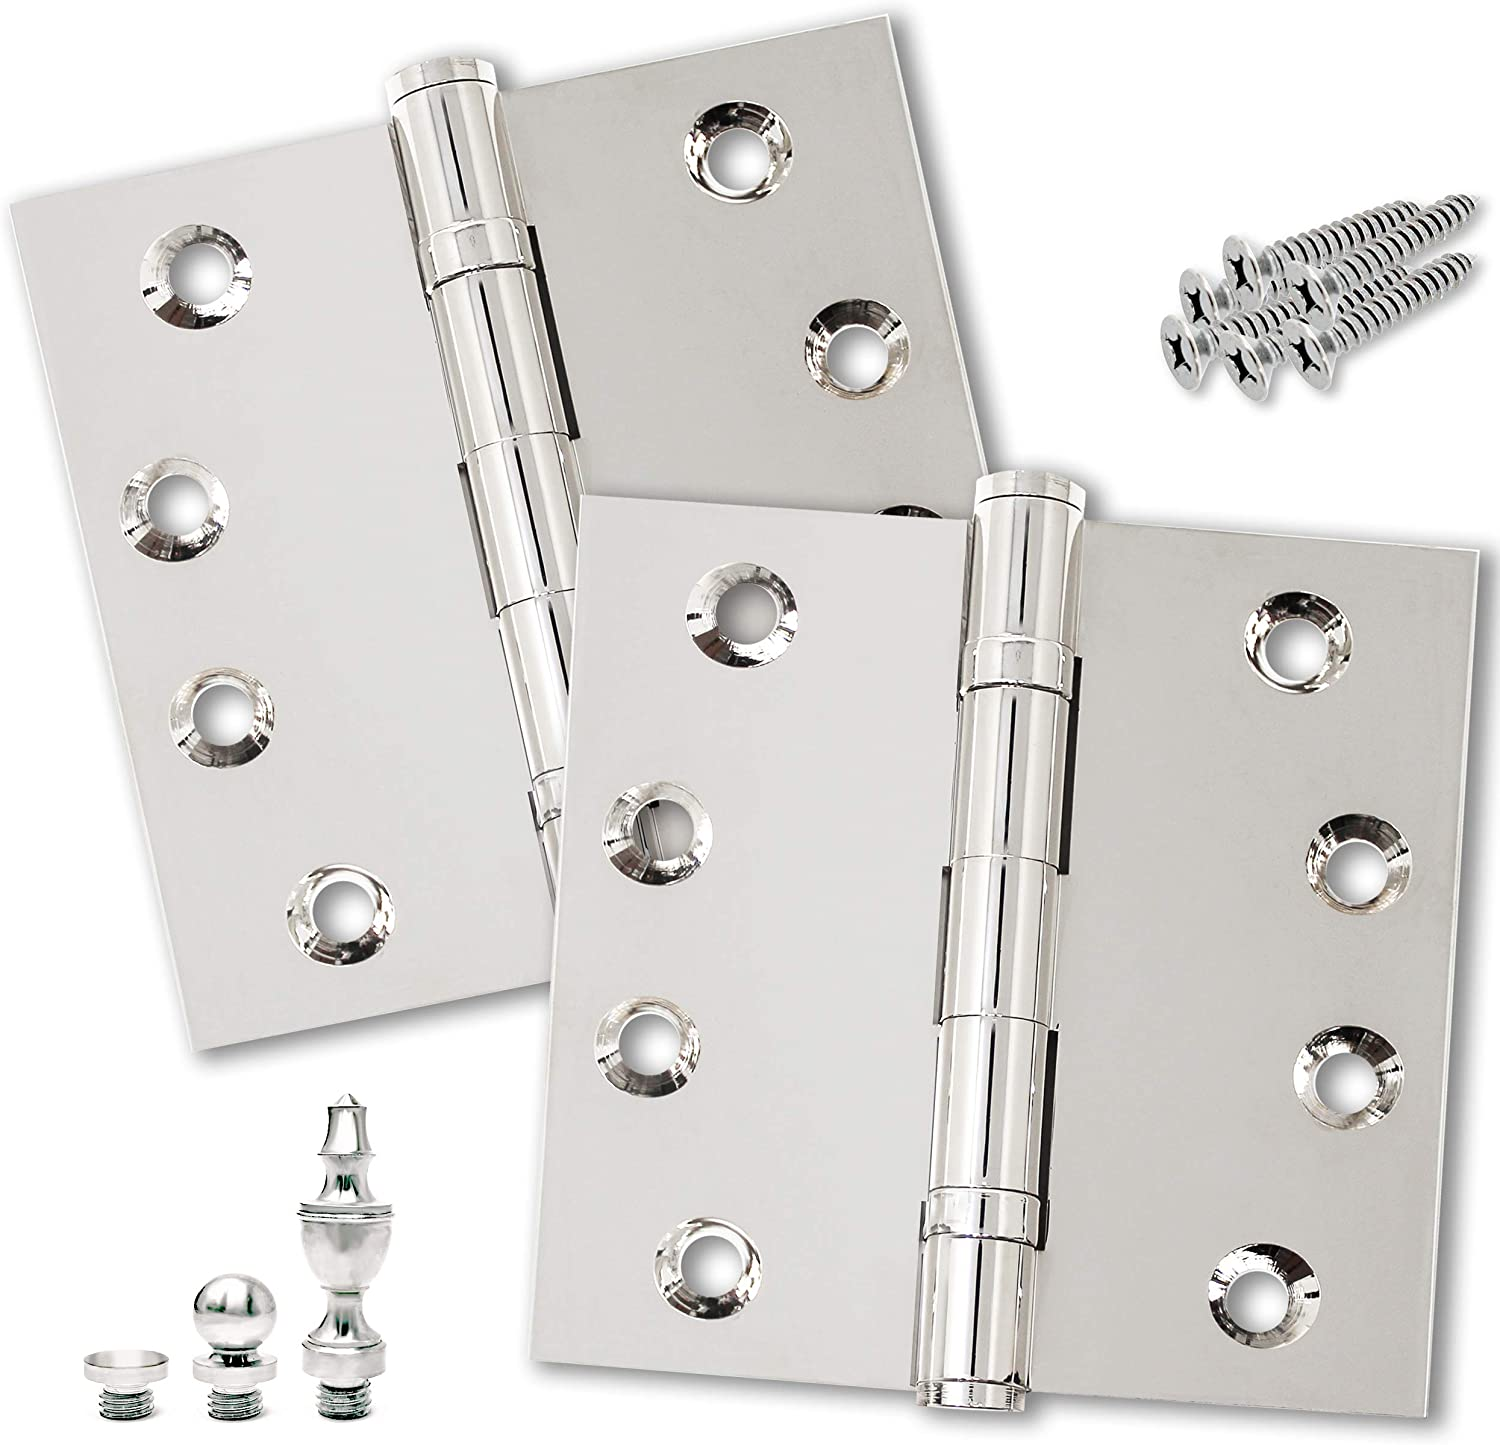 Finsbury Hardware Solid Brass Door Hinge Heavy Duty Ball Bearing Shiny Silver 4x4 Inch with Decorative Screw-on Tips Included - Set of 2 Hinges (Polished Nickel)